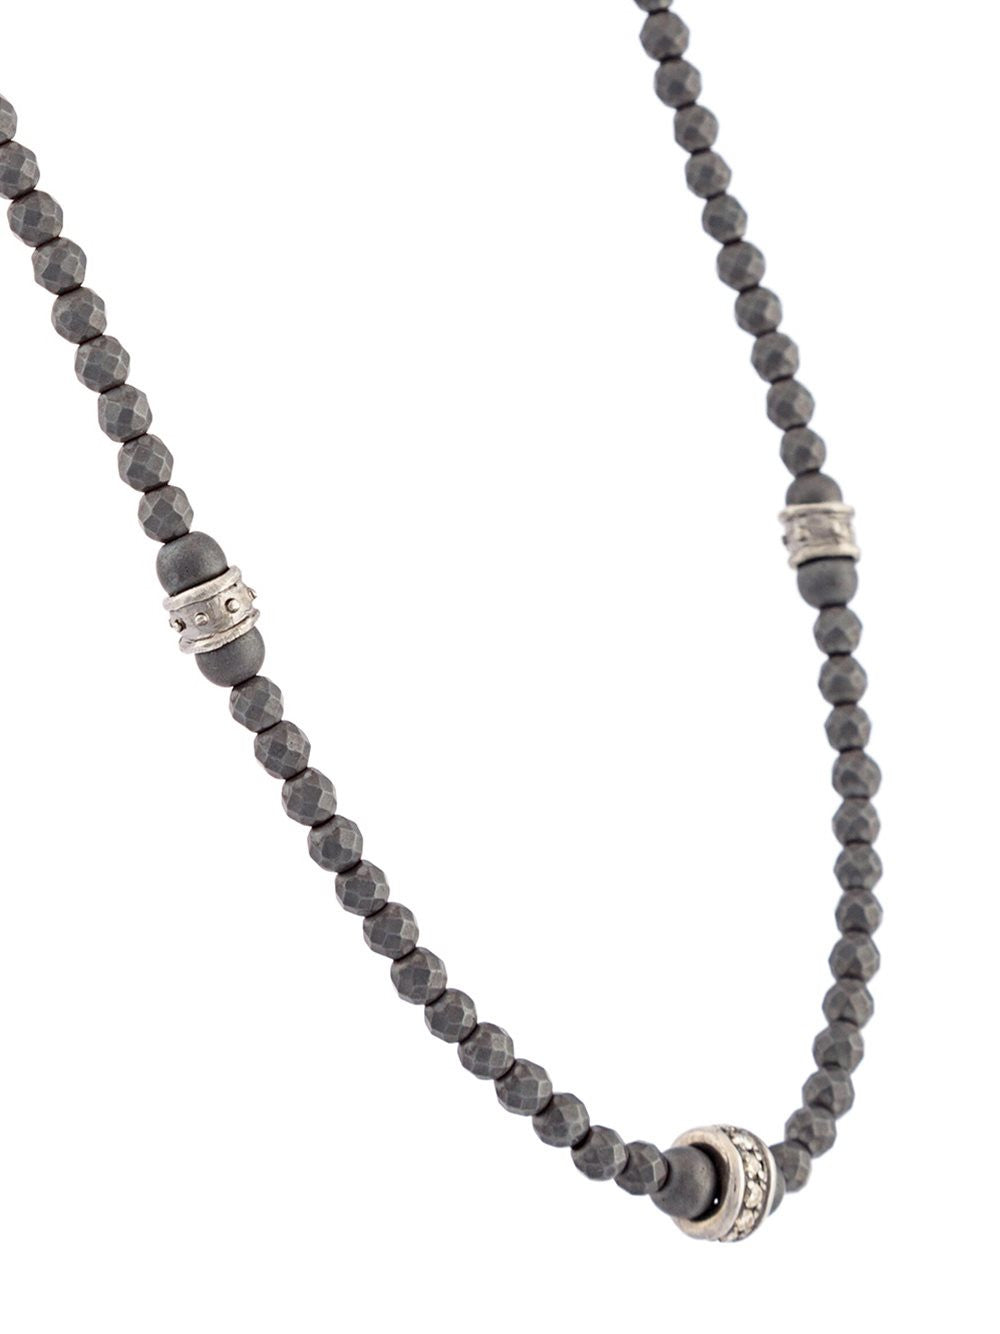 Hematite-Diamond-Silver Beaded Necklace | 12- N-479-7-SS/DIA/HEM 7